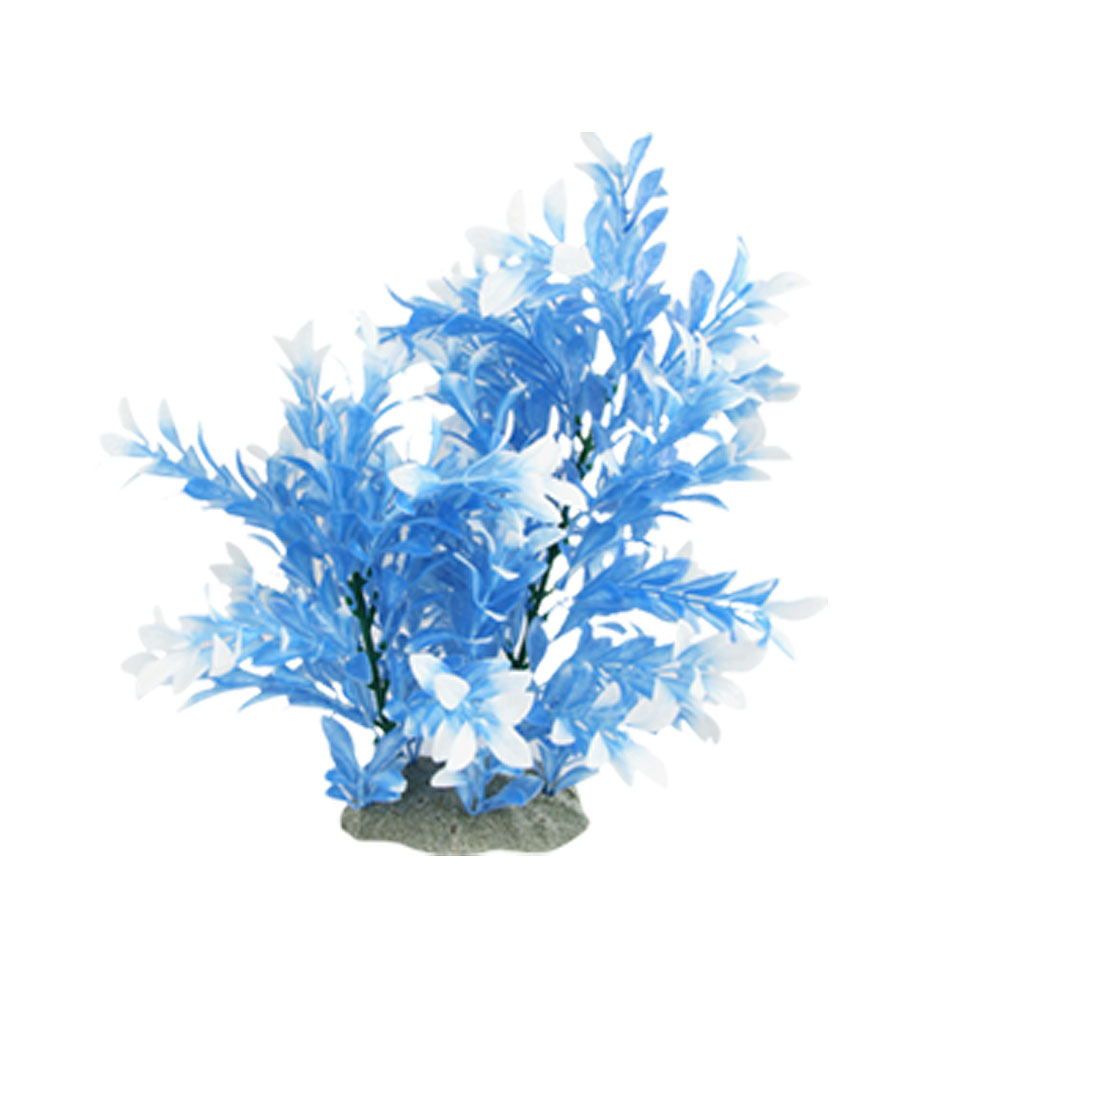 "11.8"" High Plastic Plant Aquascaping Blue White for Fish Tank"